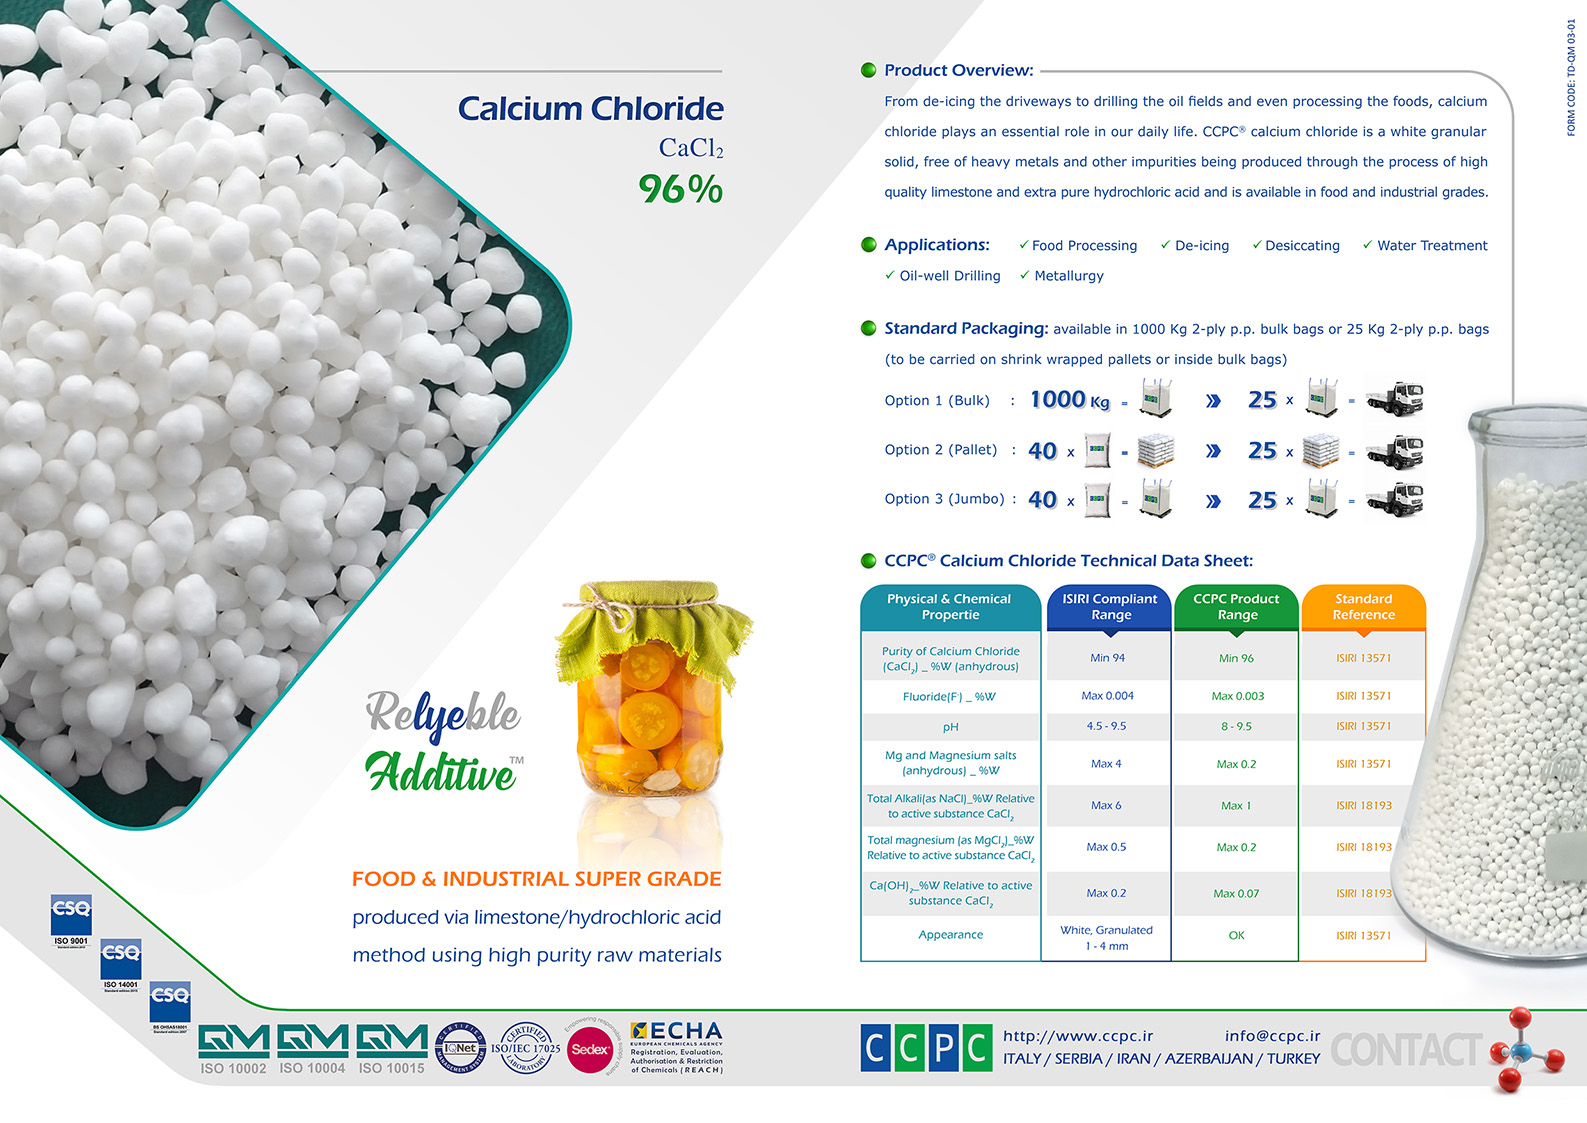 11 Calcium Chloride Pages